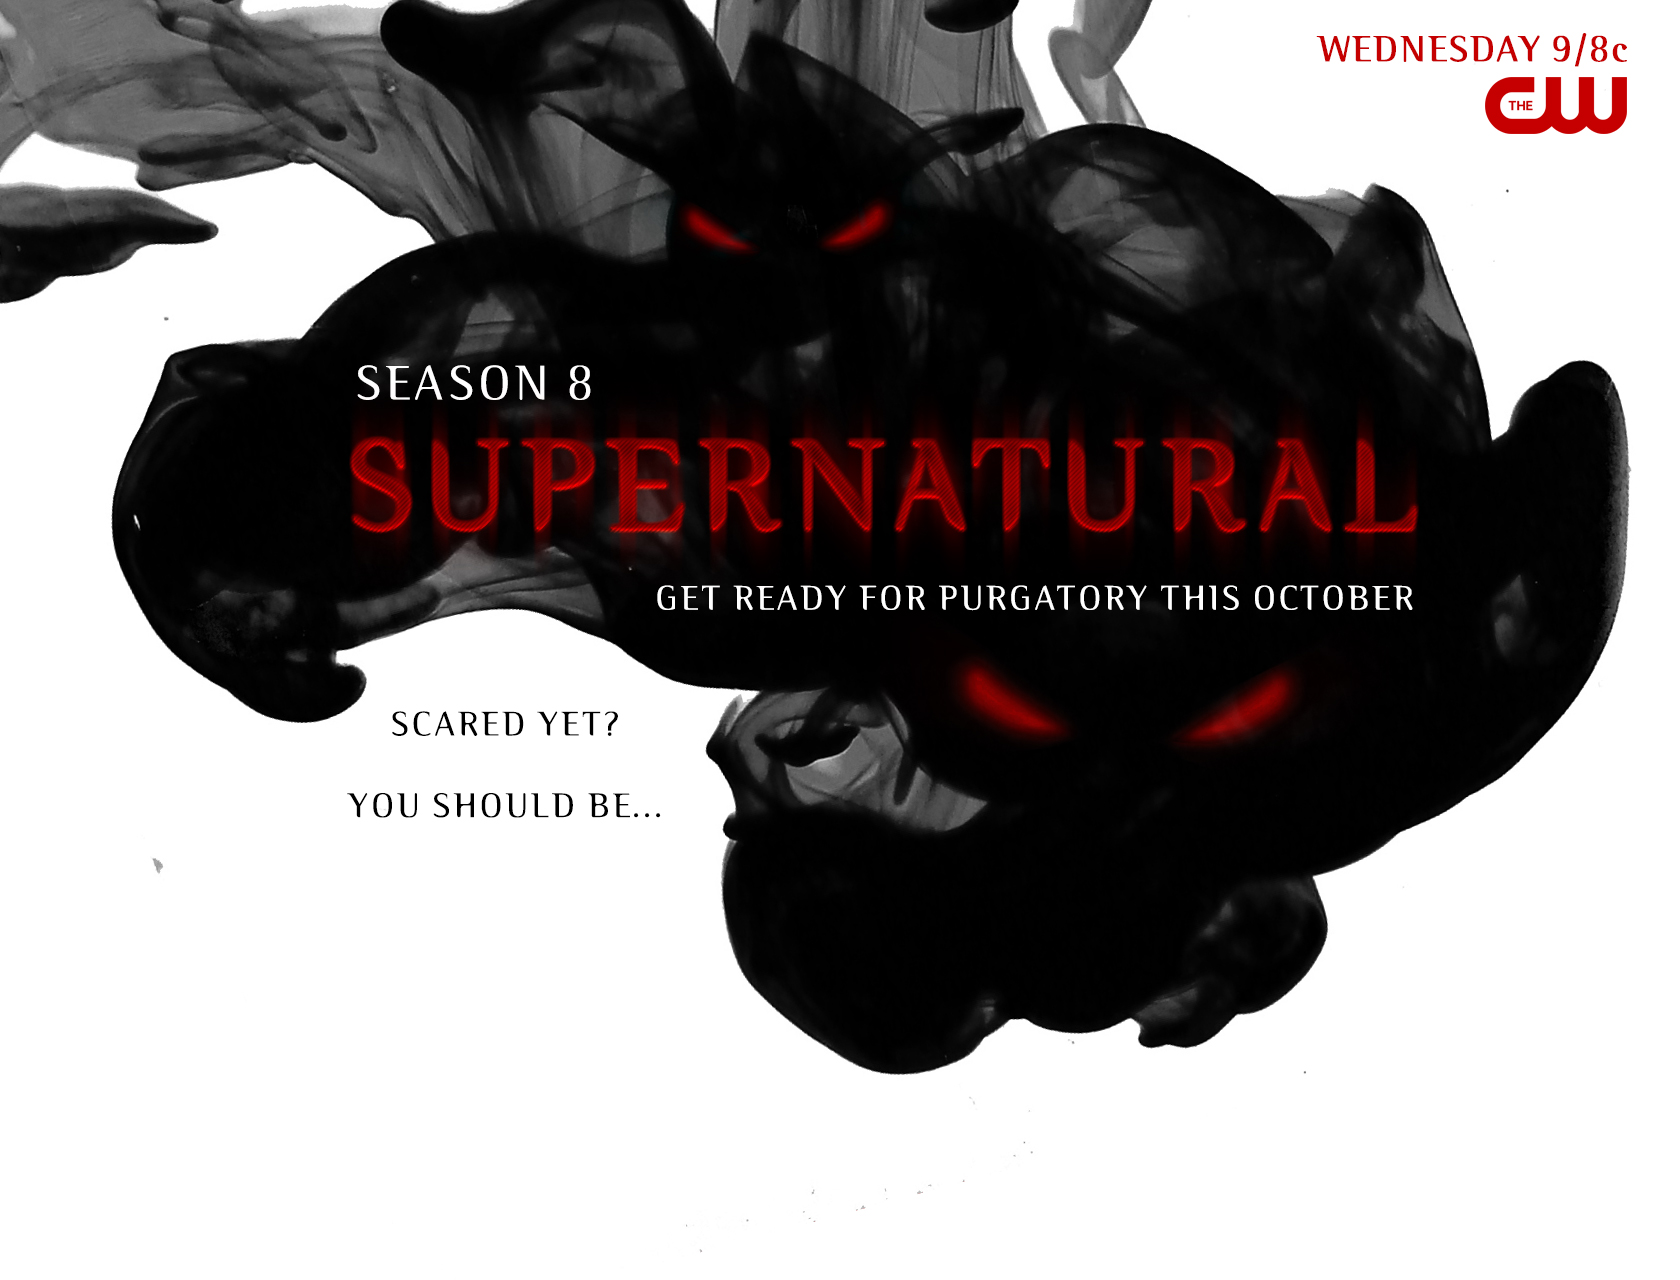 Supernatural season 8 title card background by spntfw on - Supernatural season 8 title card ...